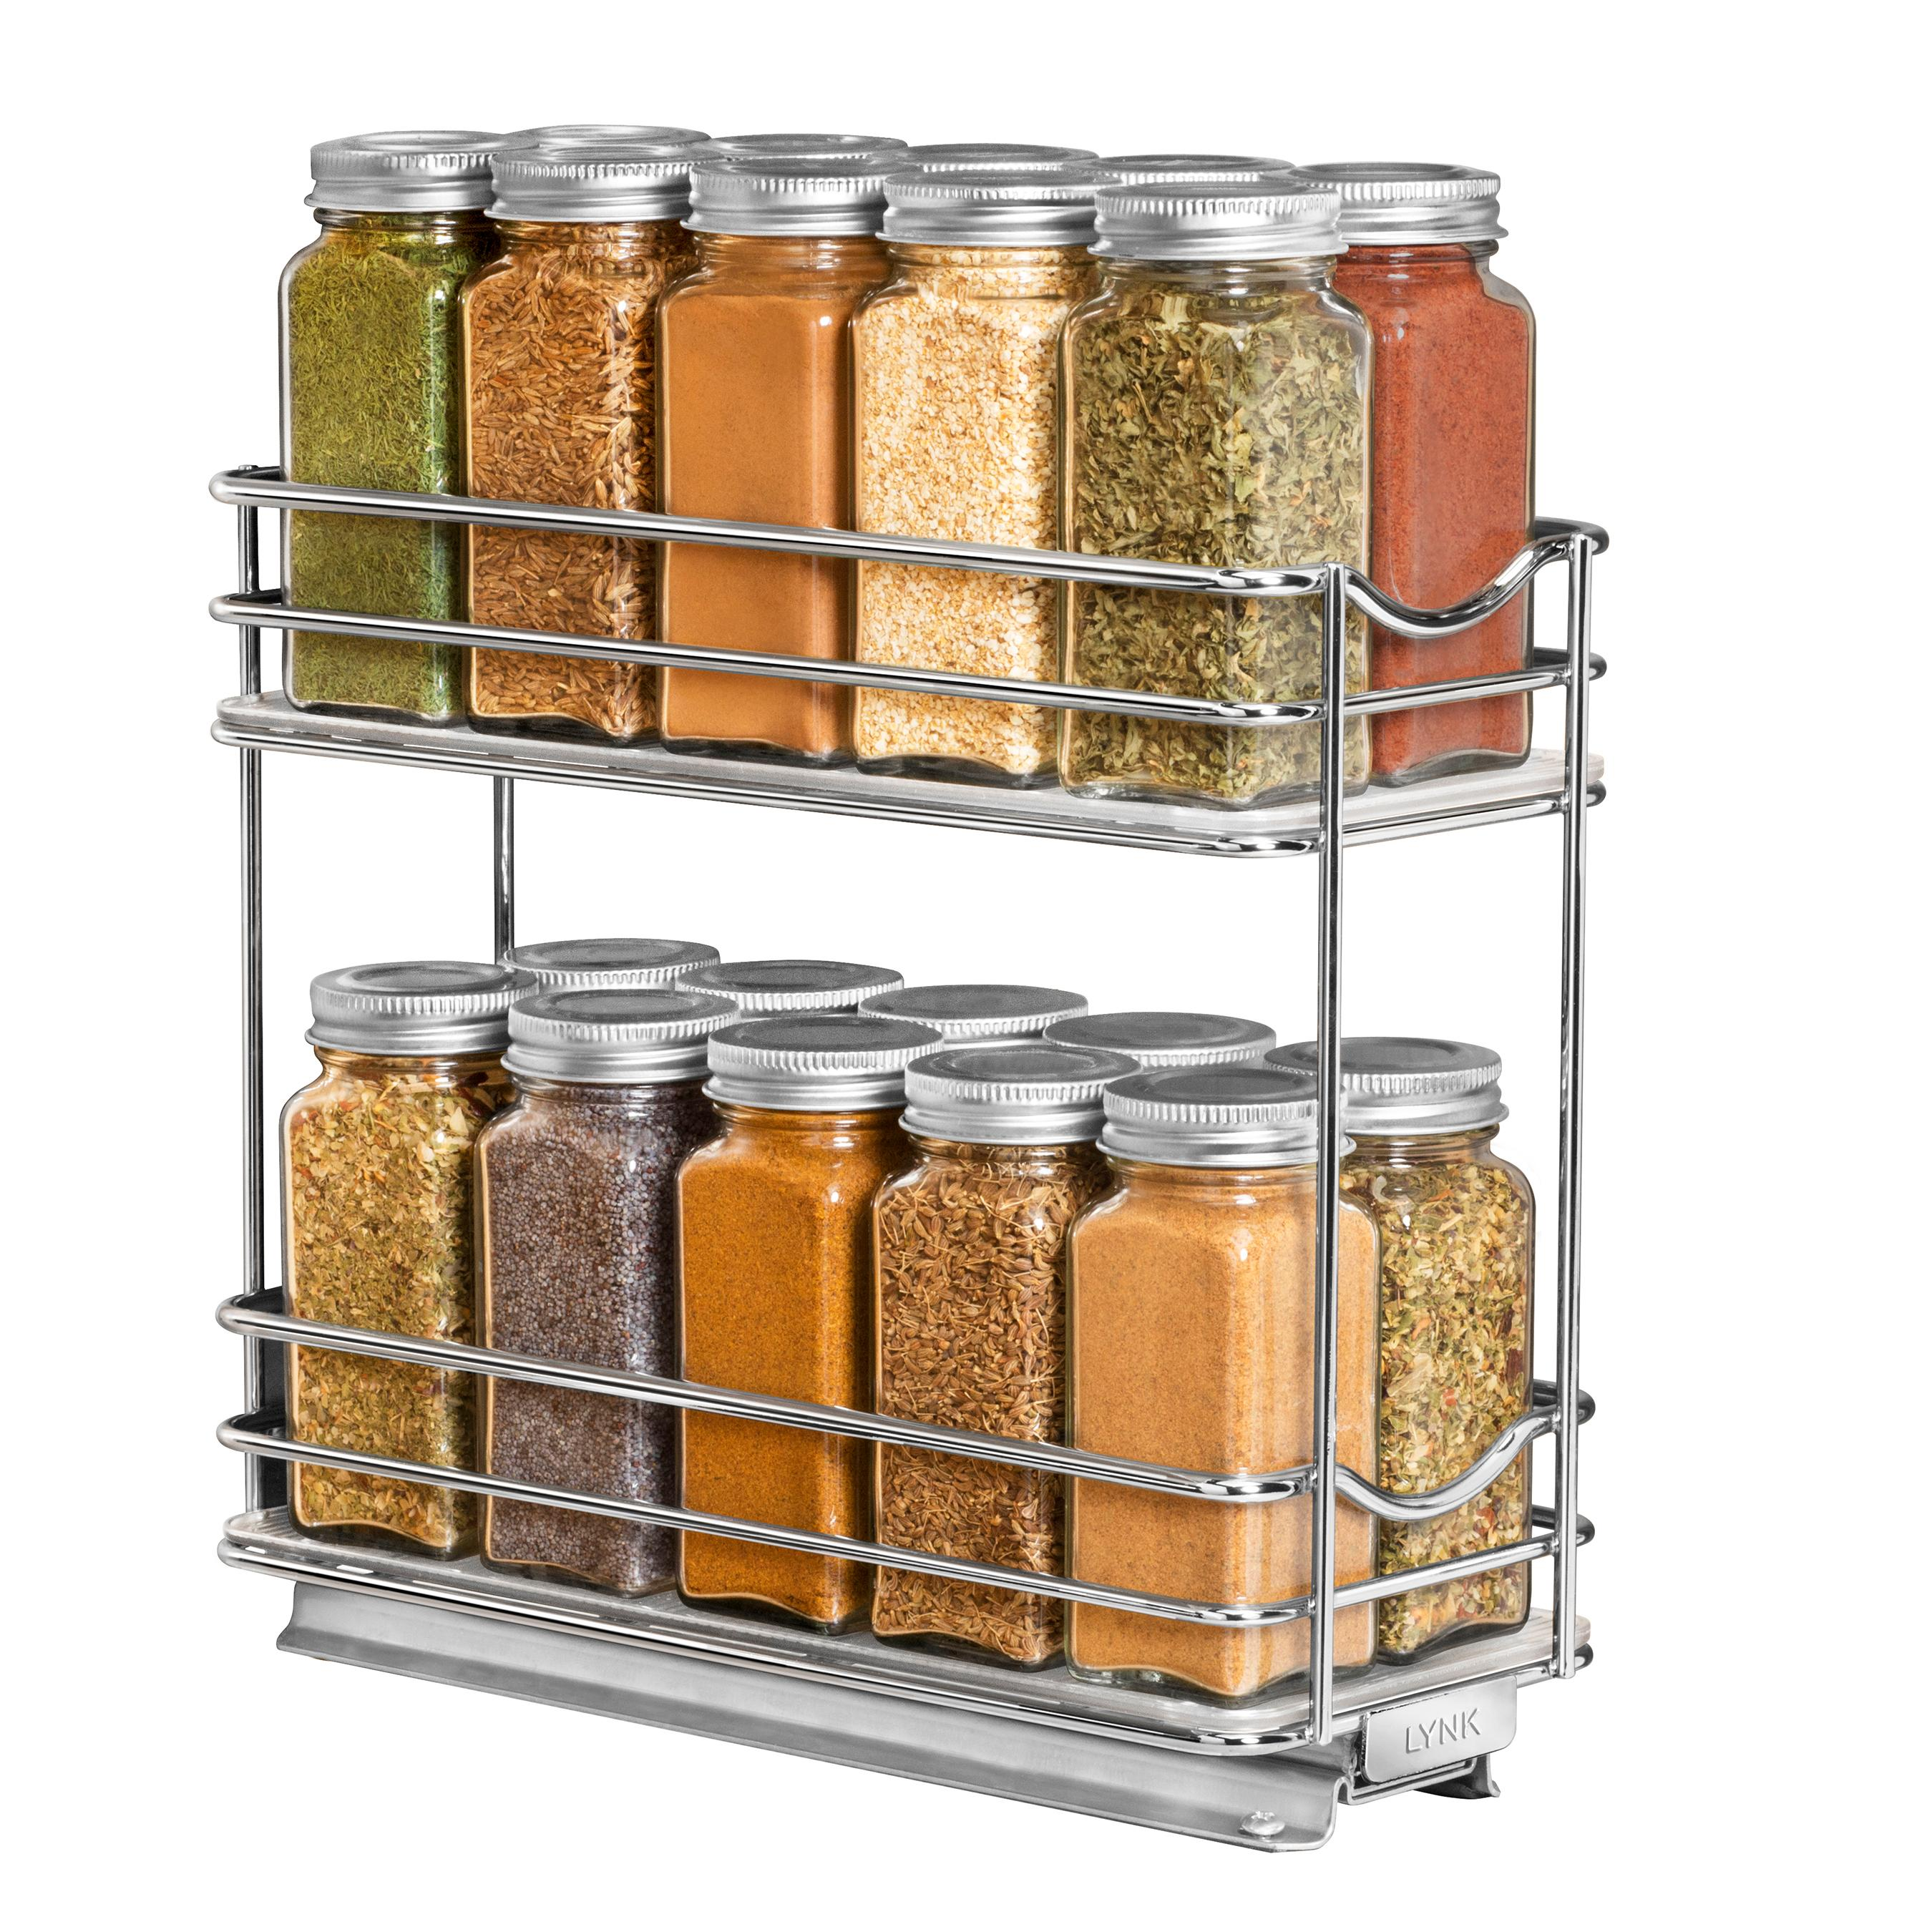 Lynk Roll Out Cabinet Organizer: Lynk Professional Roll Out Under Sink Cabinet Organizer